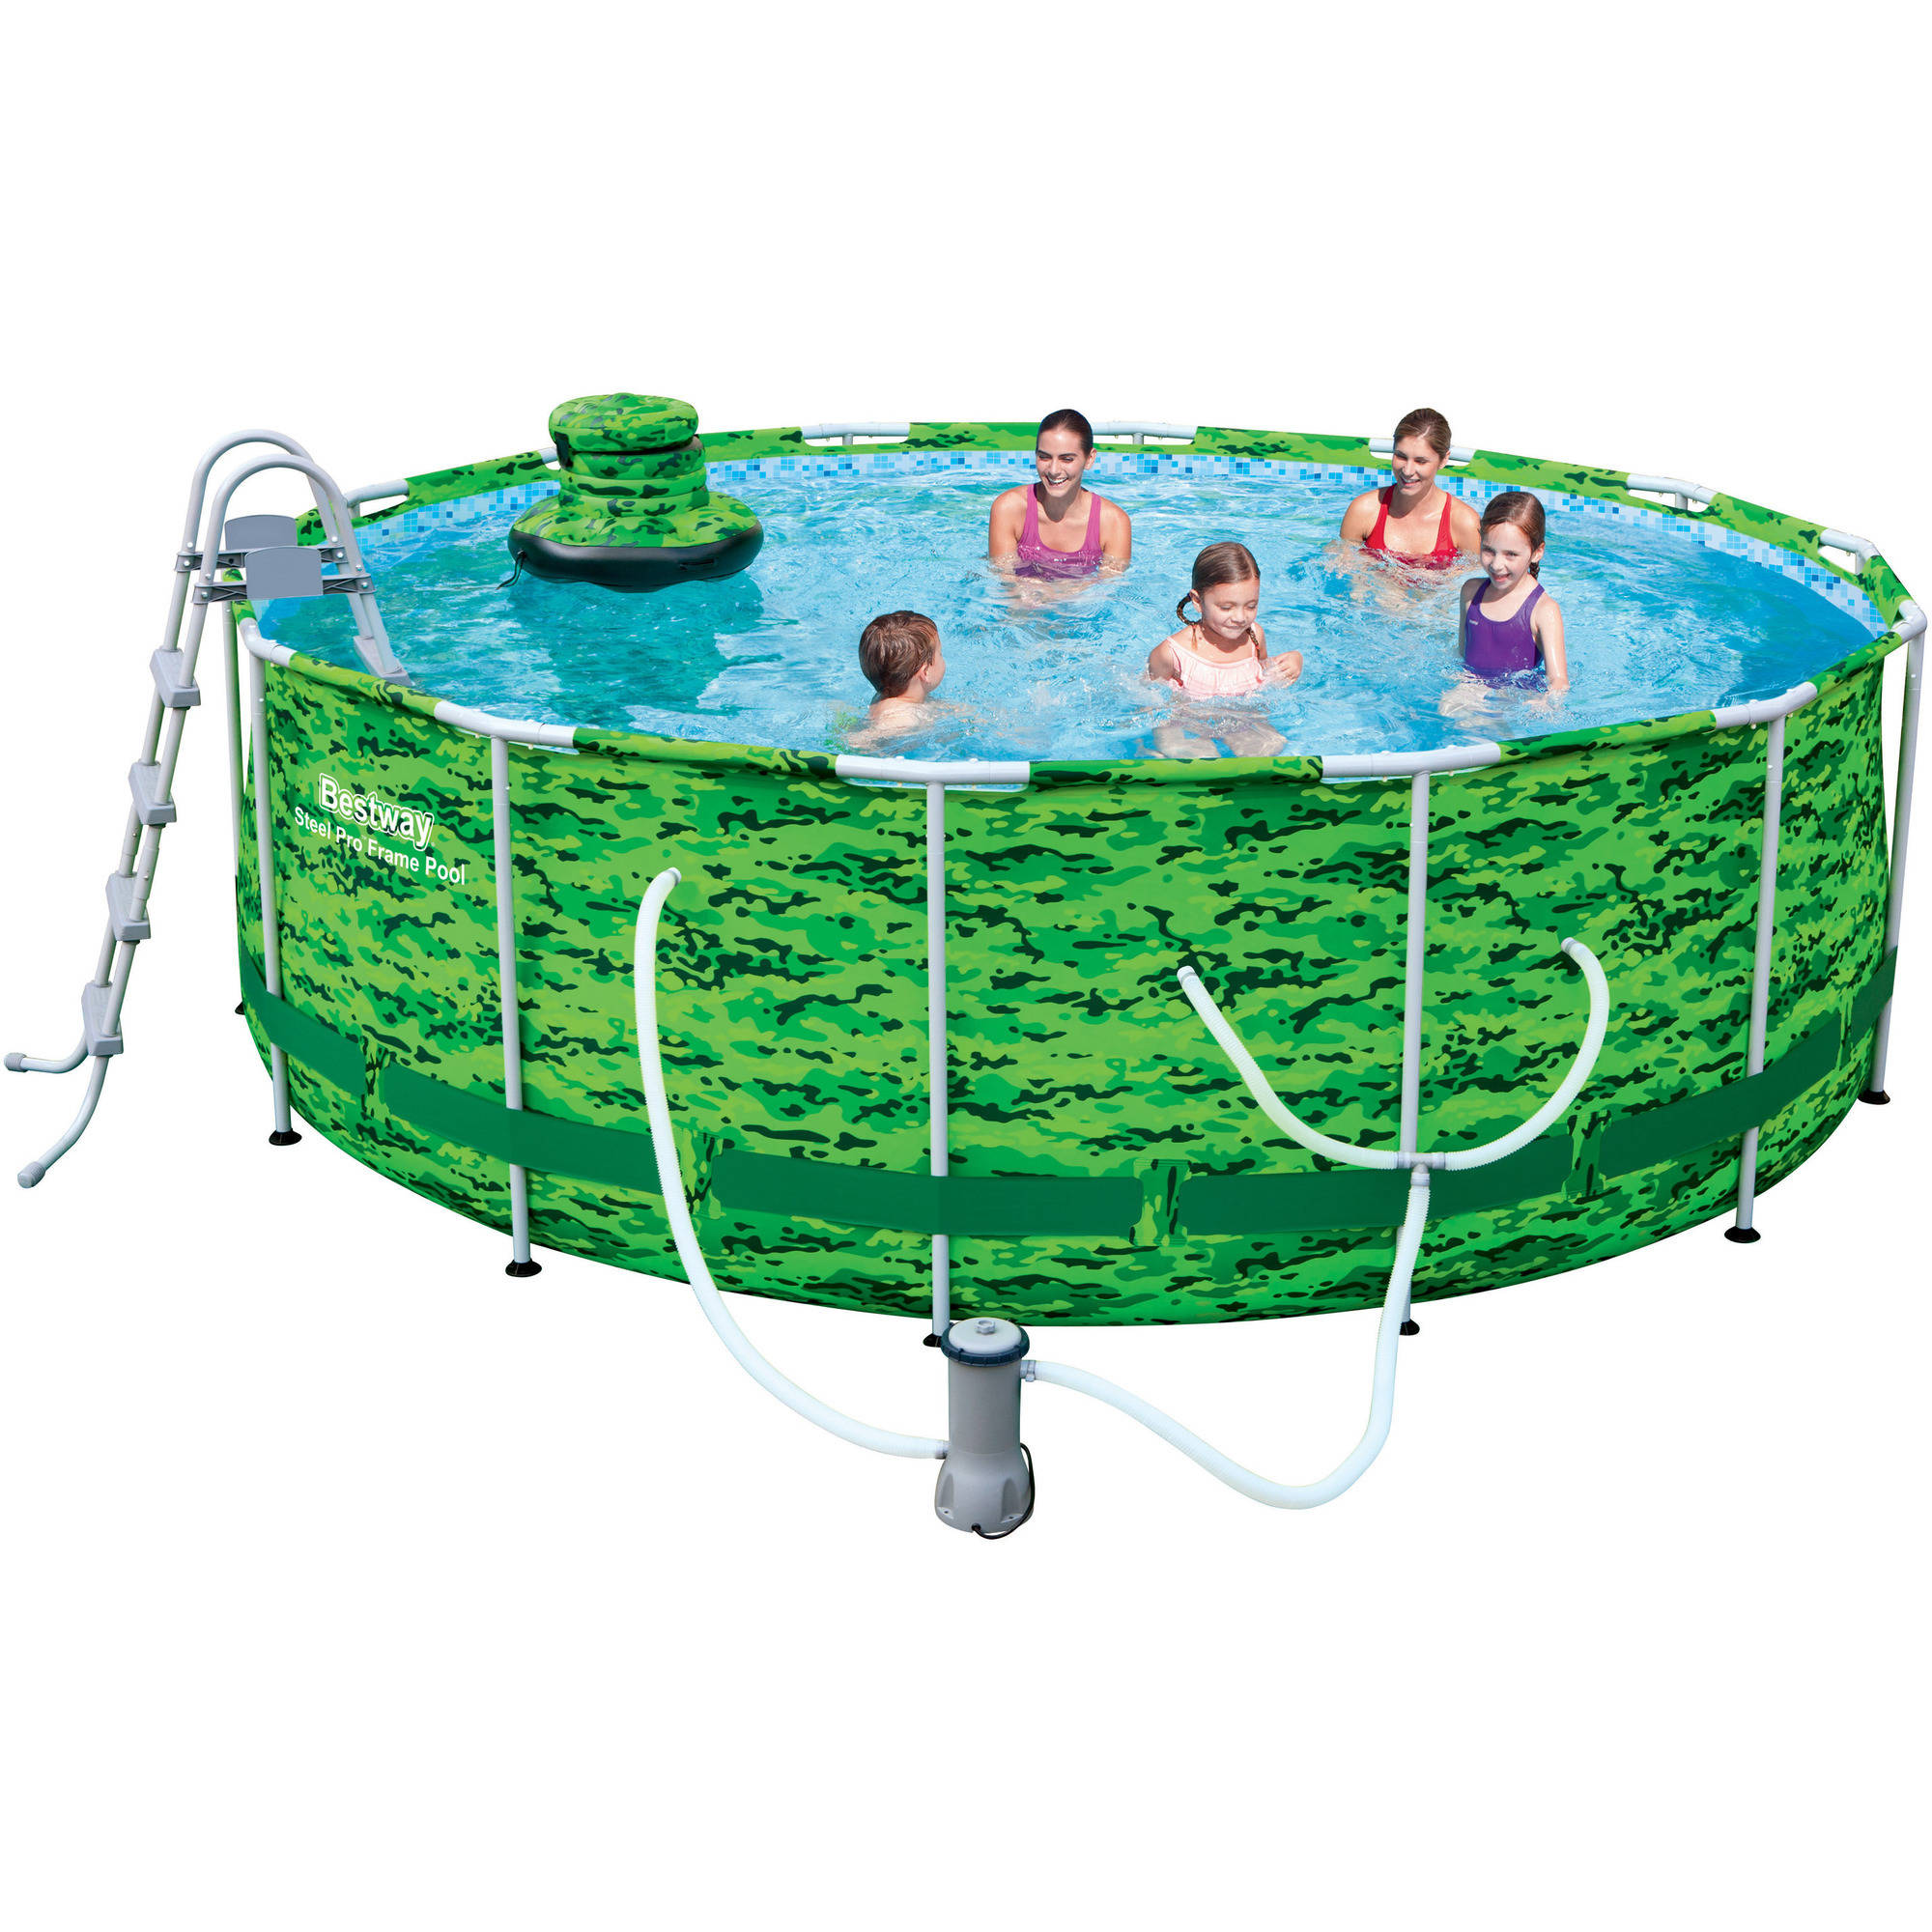 "Bestway Steel Pro MAX Camo 14' x 48"" Frame Swimming Pool Set"